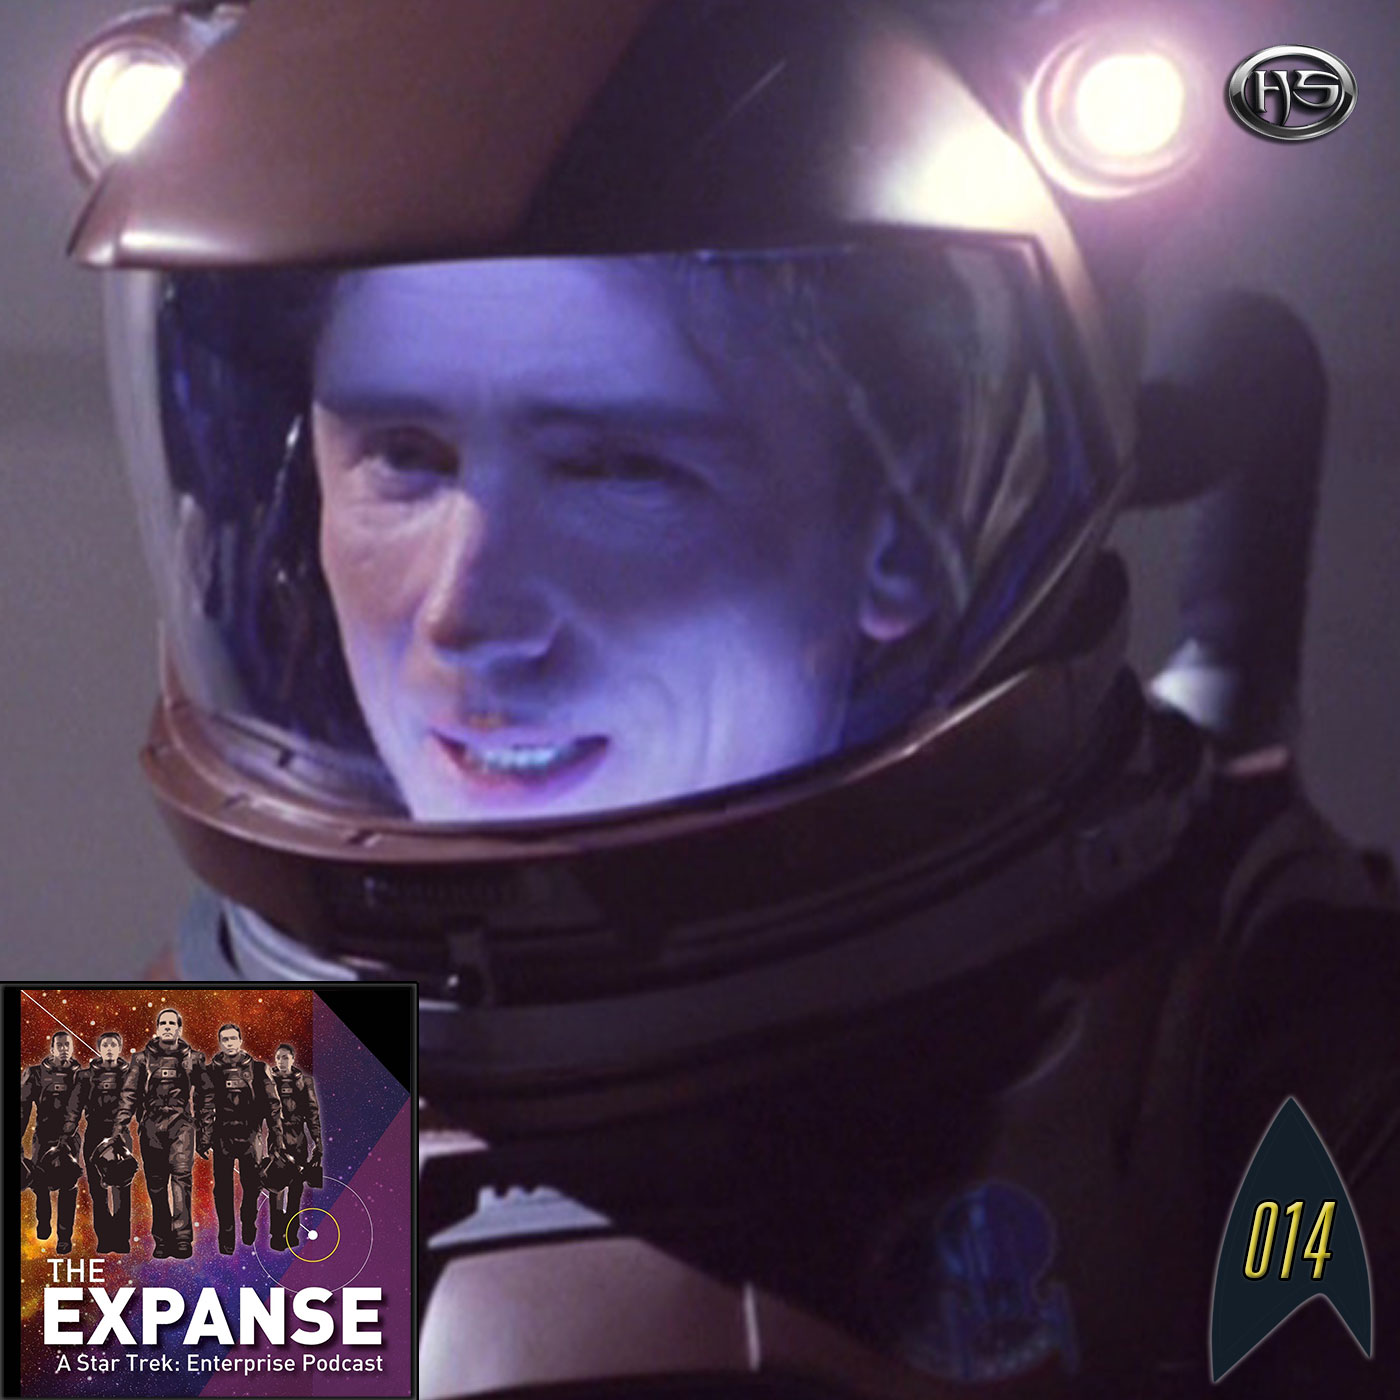 The Expanse Episode 14